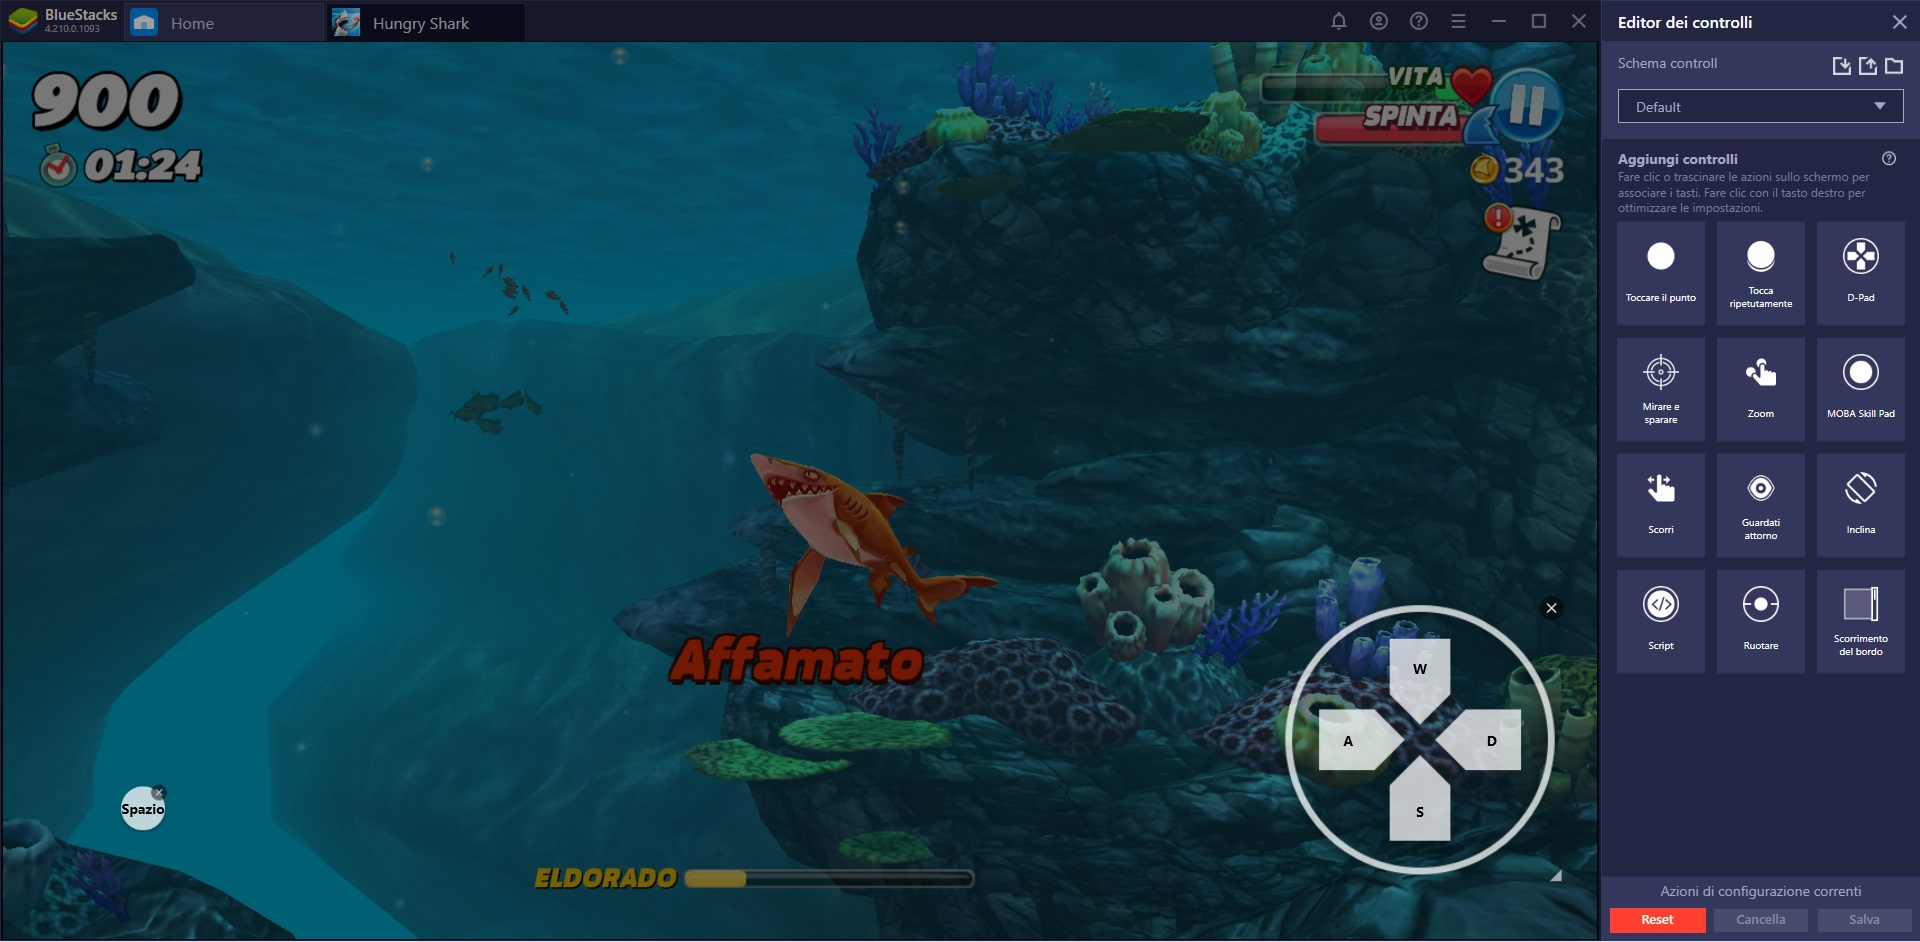 Hungry Shark World è disponibile su PC con Bluestacks